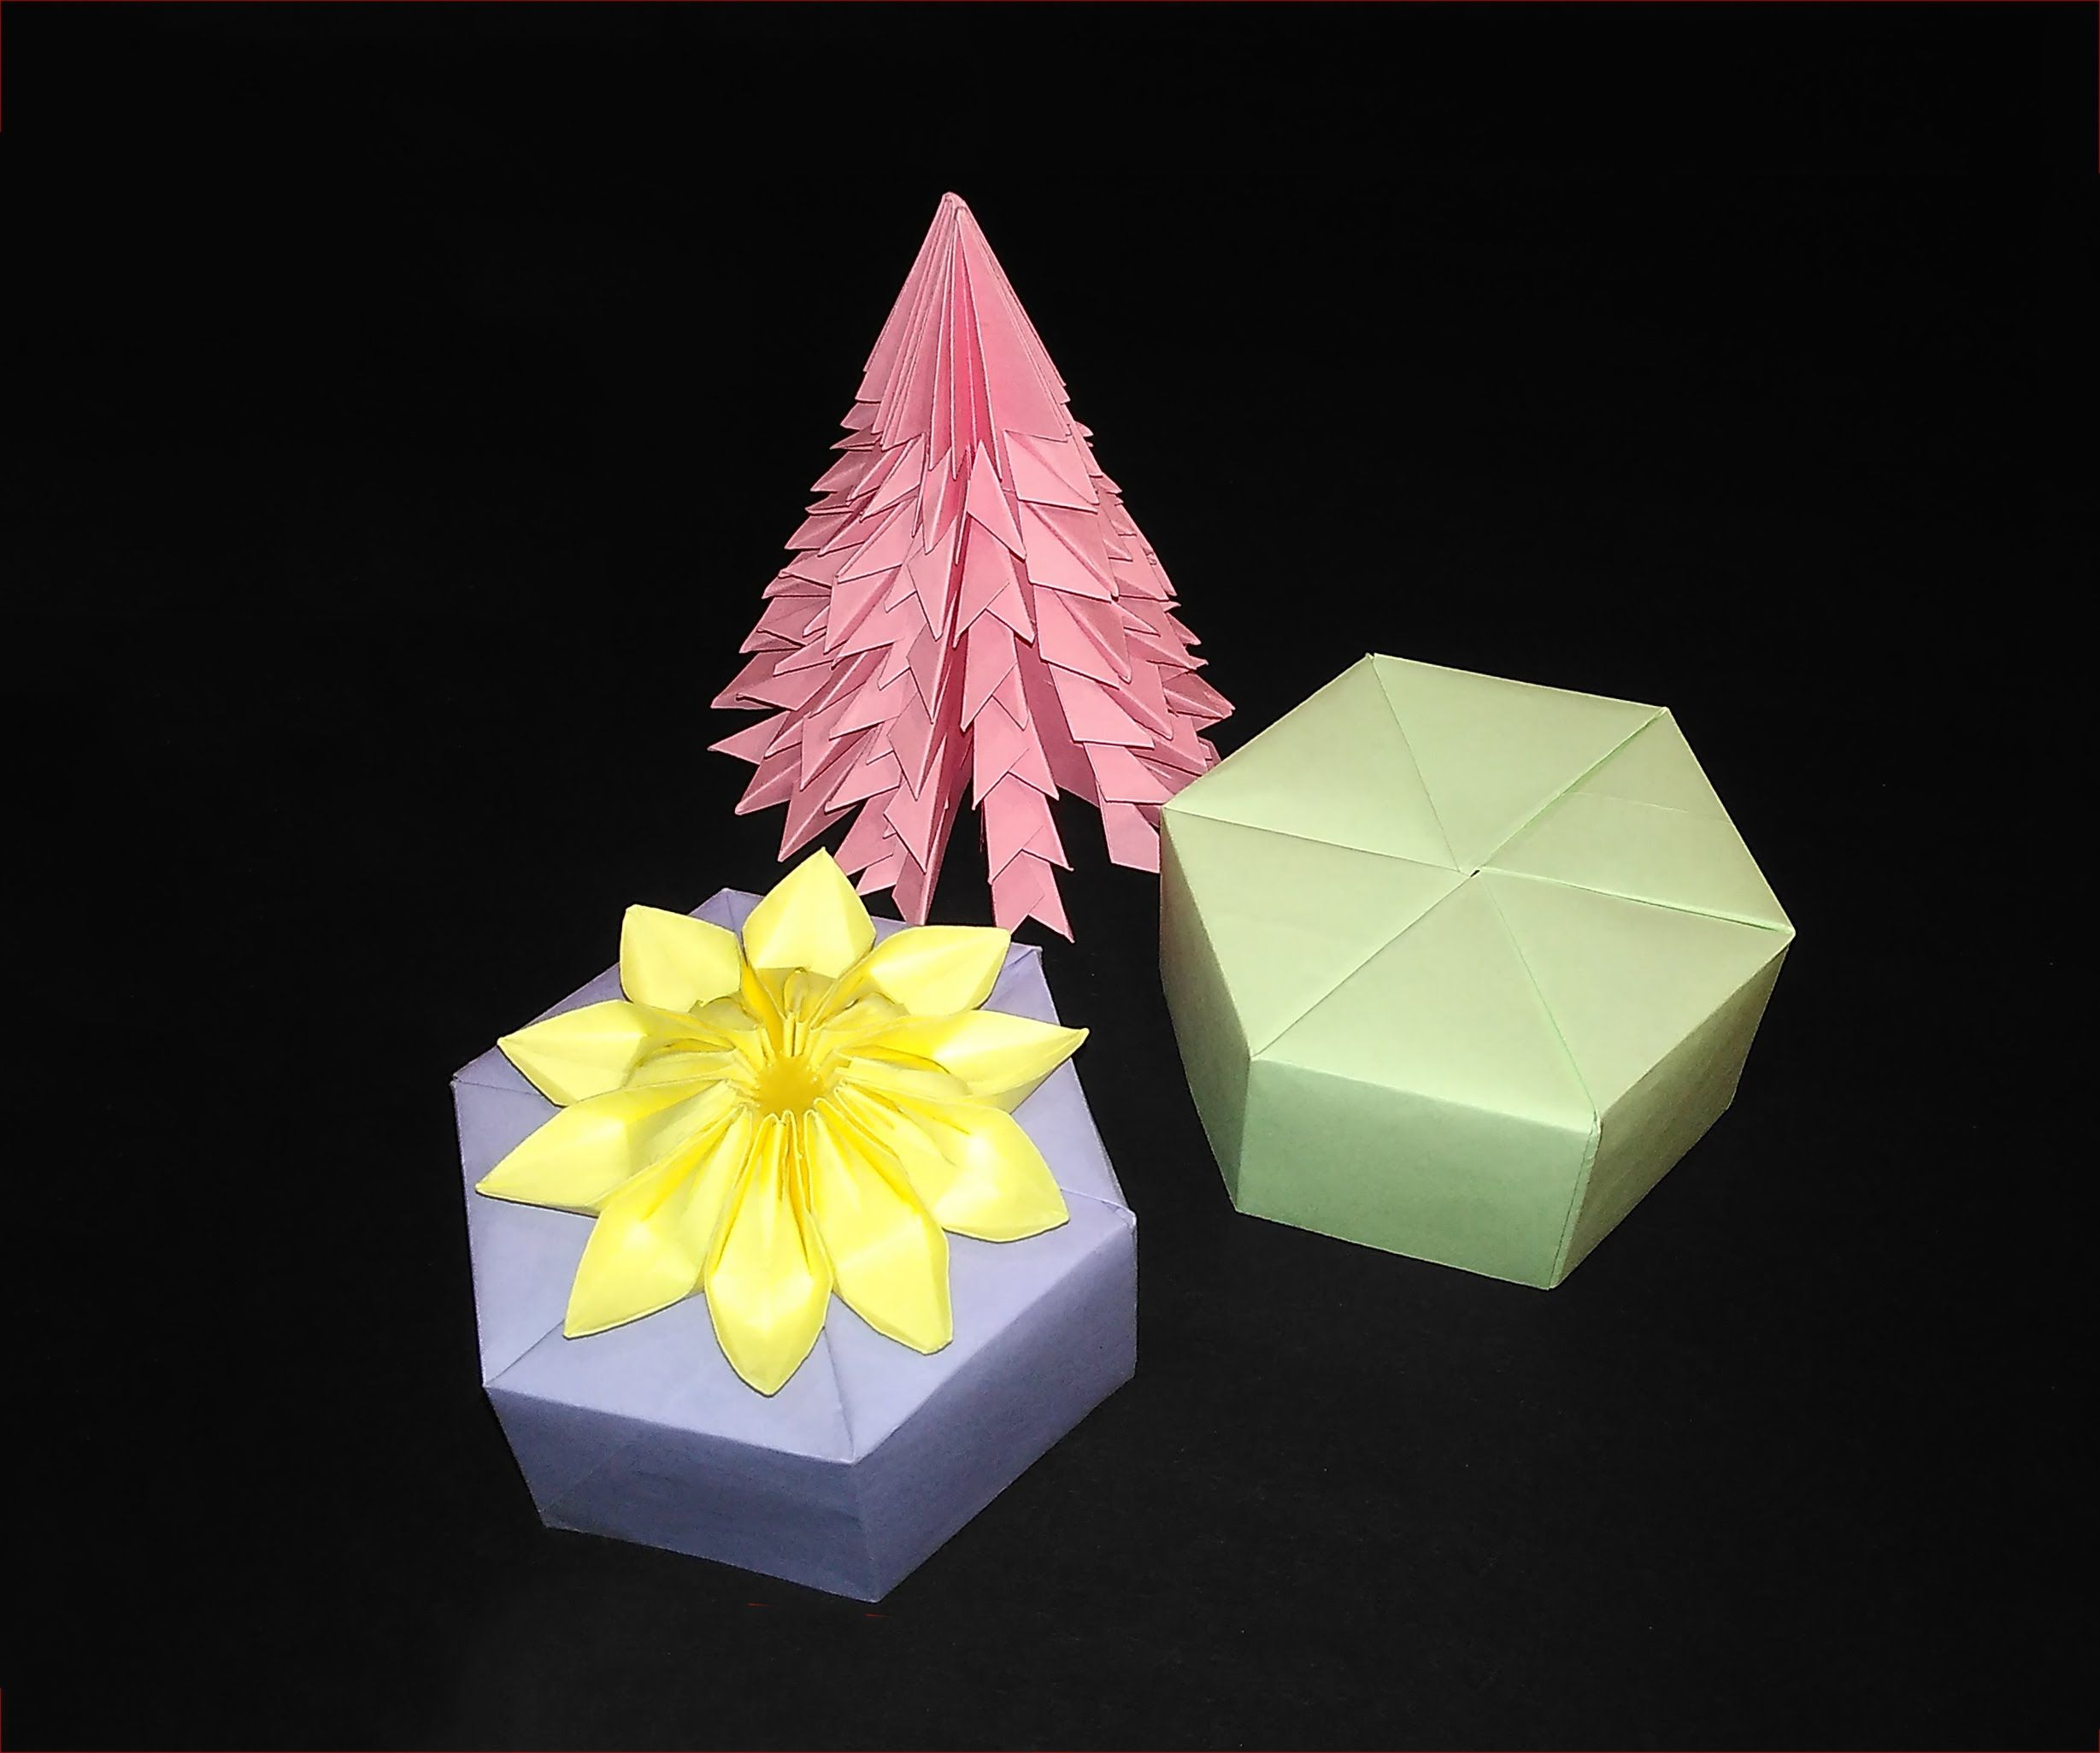 Origami Hexagonal gift box! Easy tutorial of hexagon gift box (Tomoko Fuse)  -